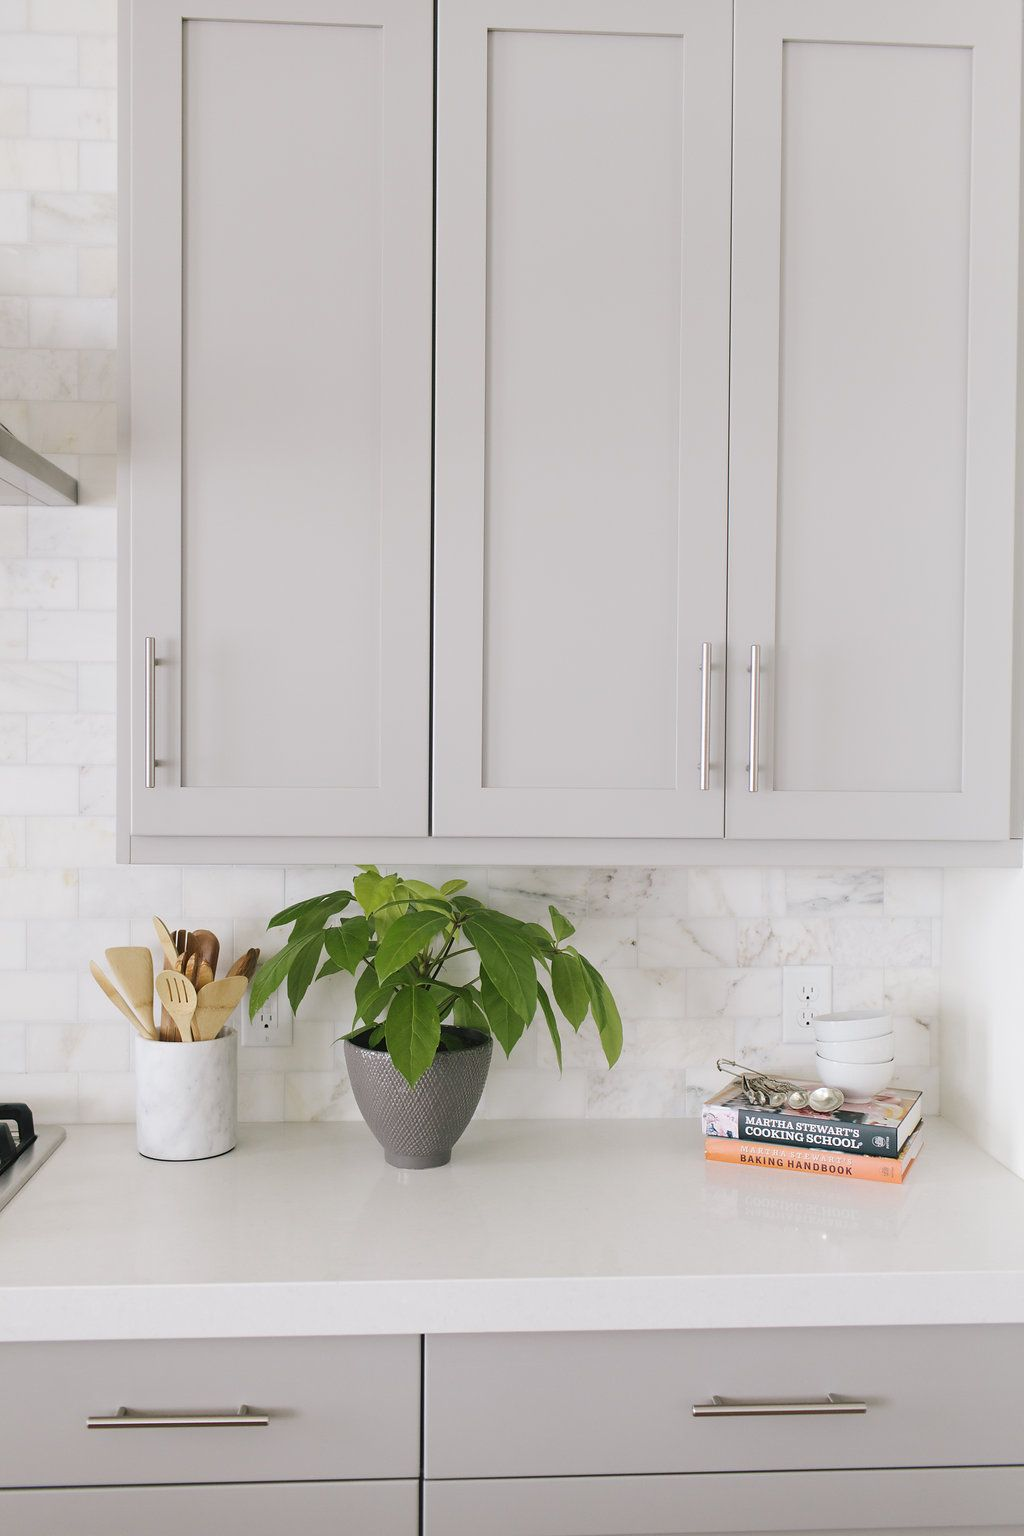 Cabinet Color Sherwin Williams Mindful Gray The Someday Kitchen - Light grey painted kitchen cabinets